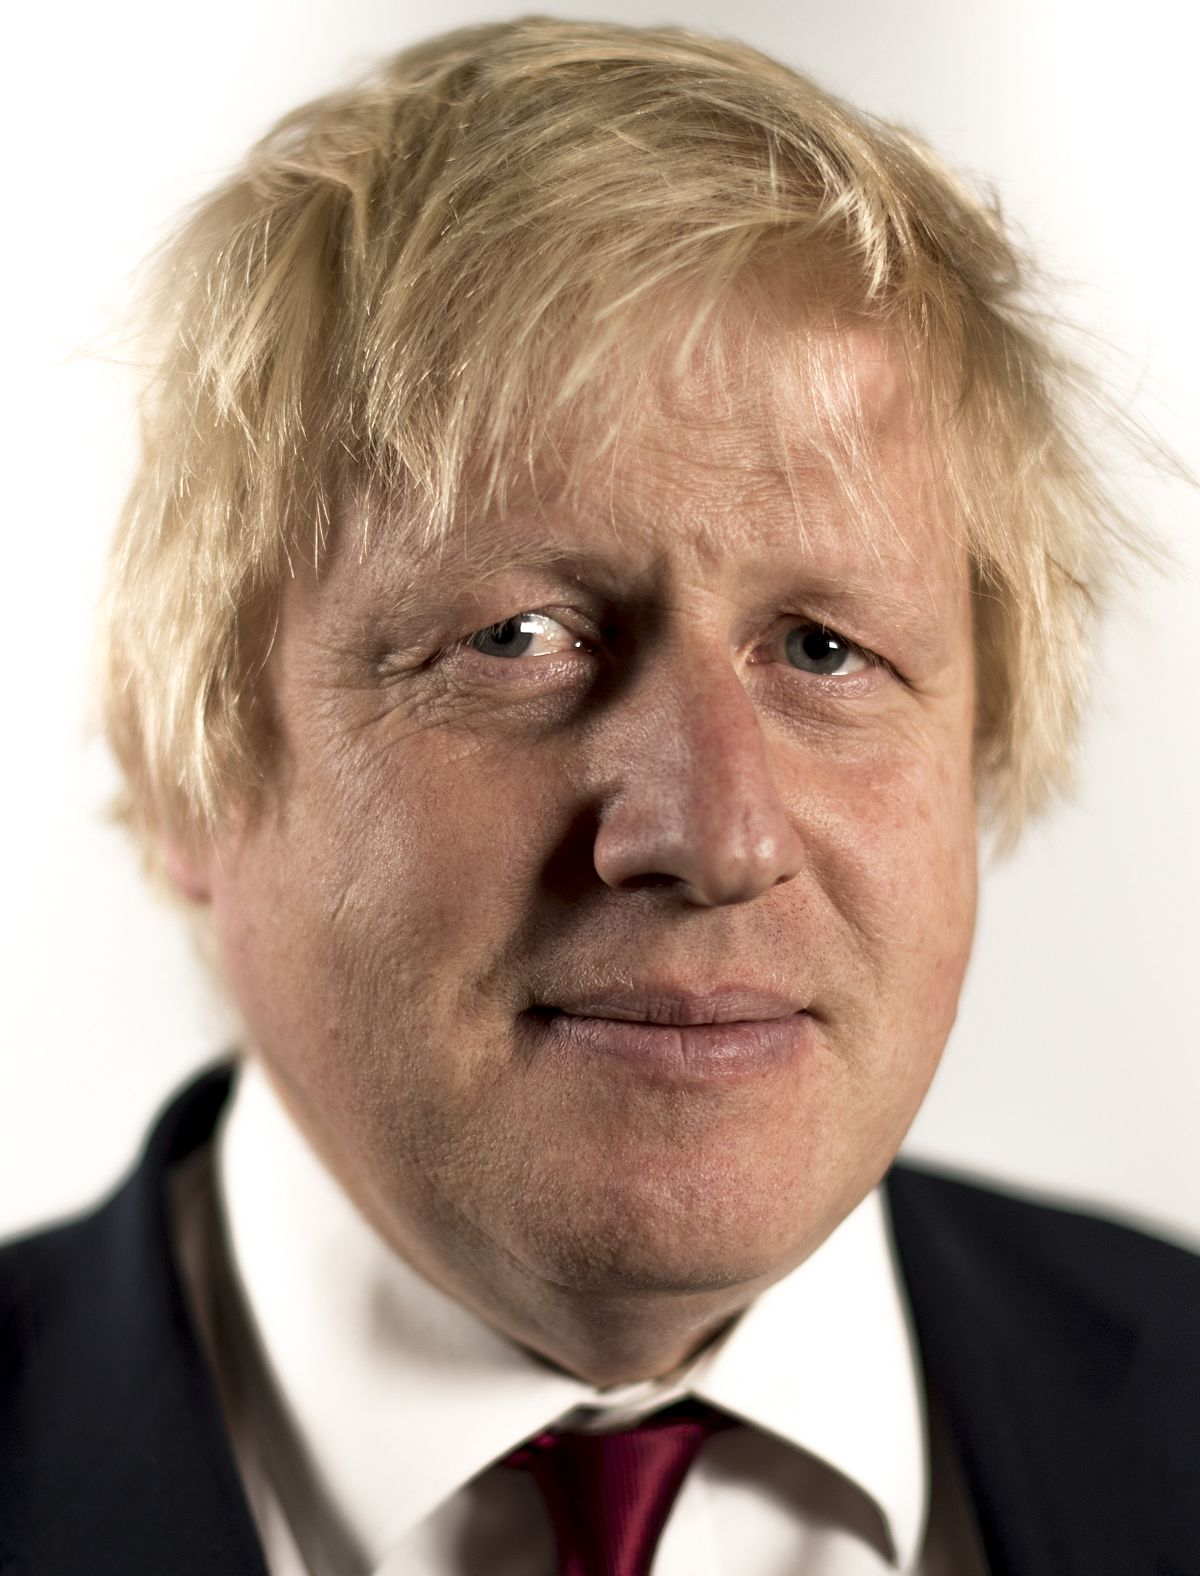 boris johnson - photo #1